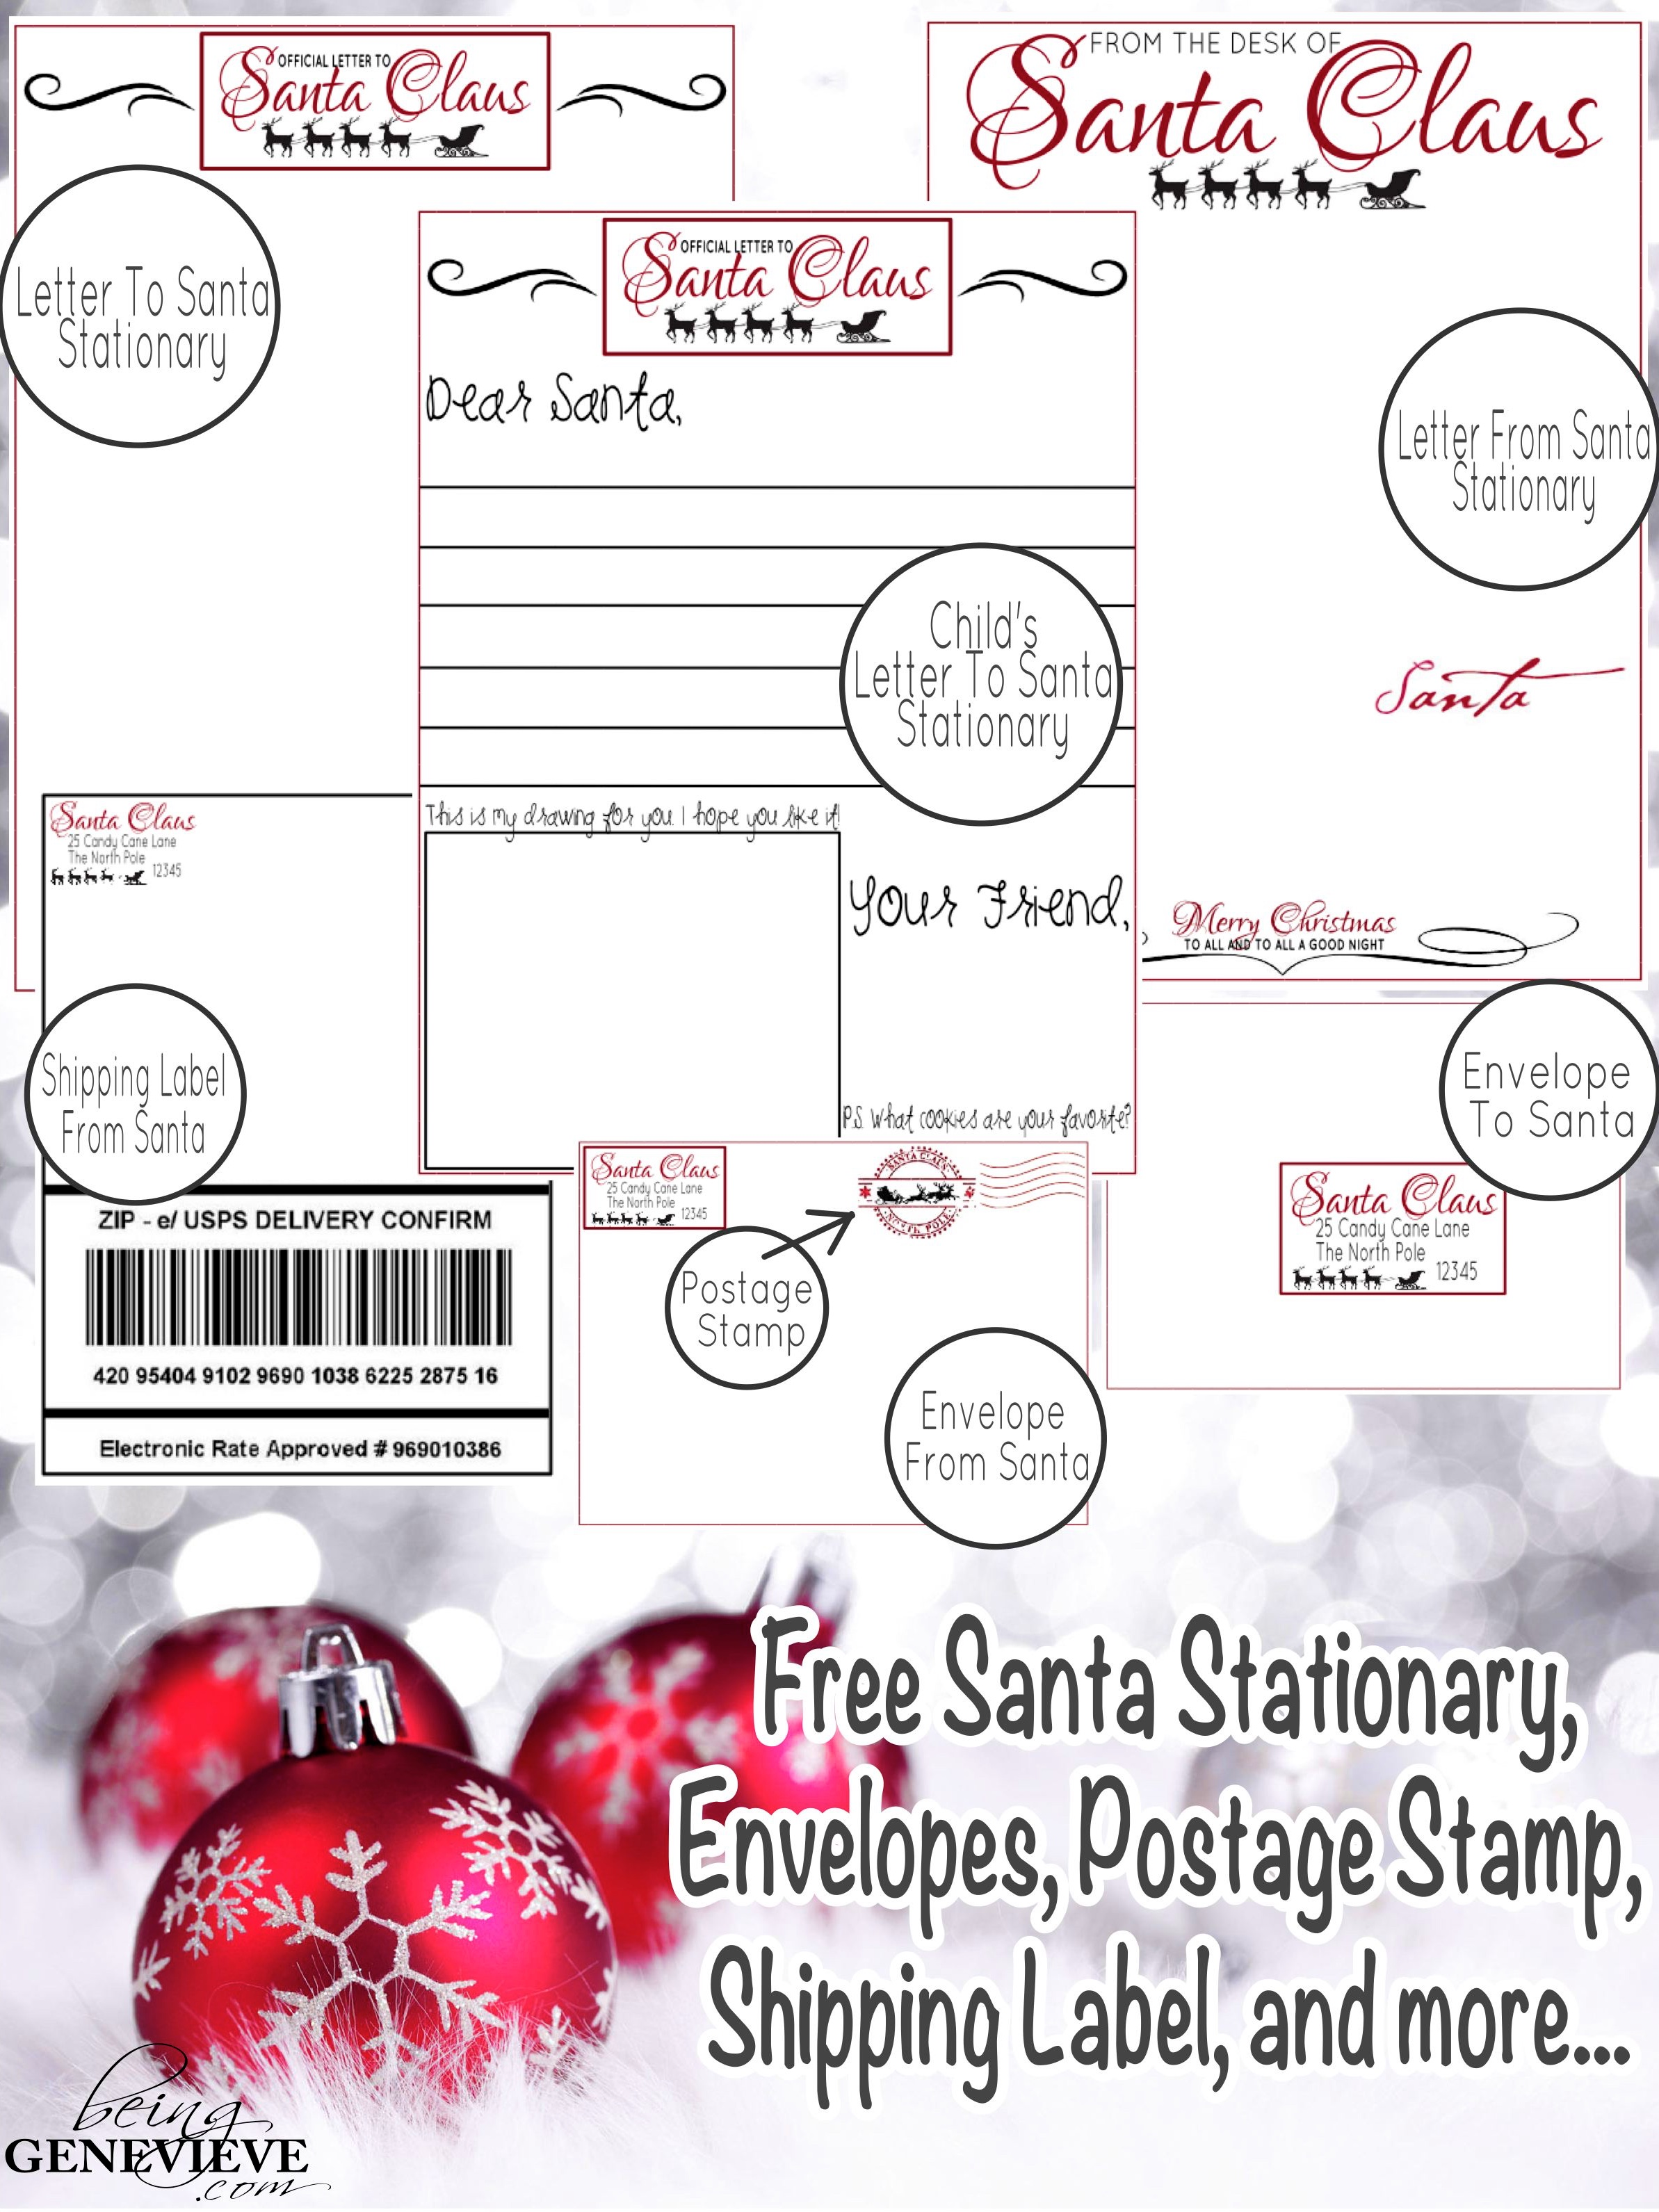 picture regarding Free Printable North Pole Special Delivery Printable referred to as Santas One of a kind Shipping Staying Genevieve